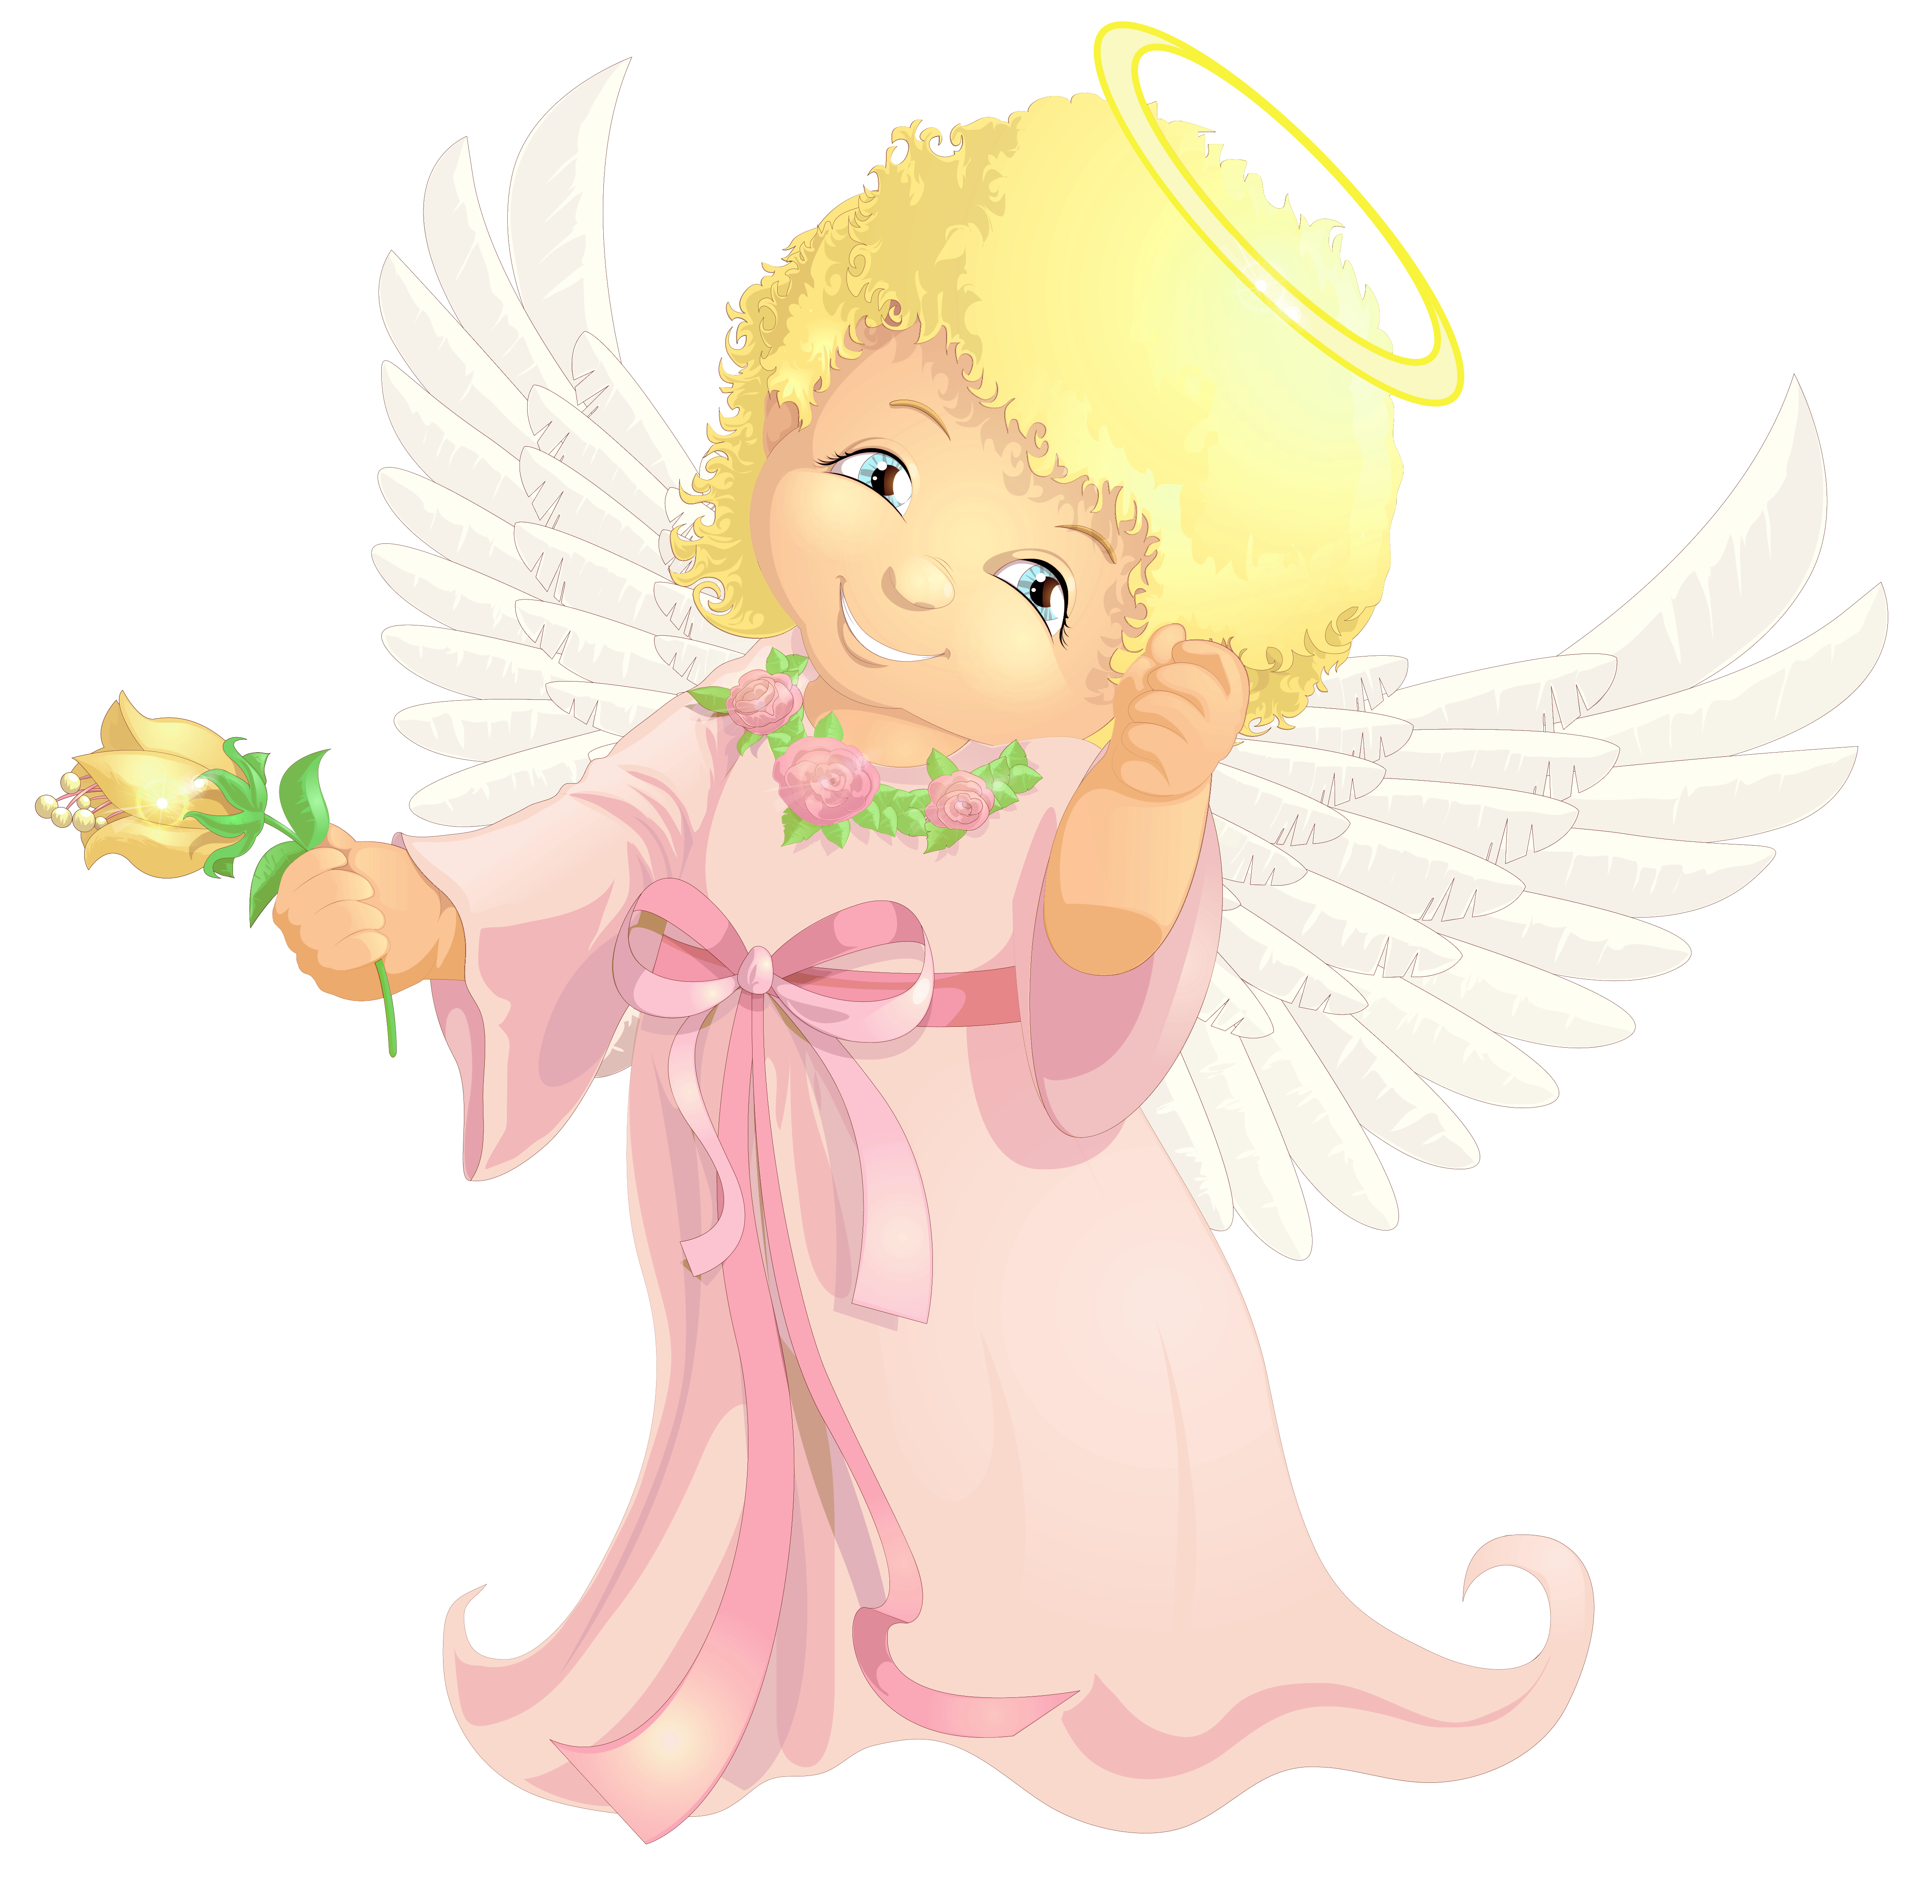 Angel transparent png. Cute clipart gallery yopriceville